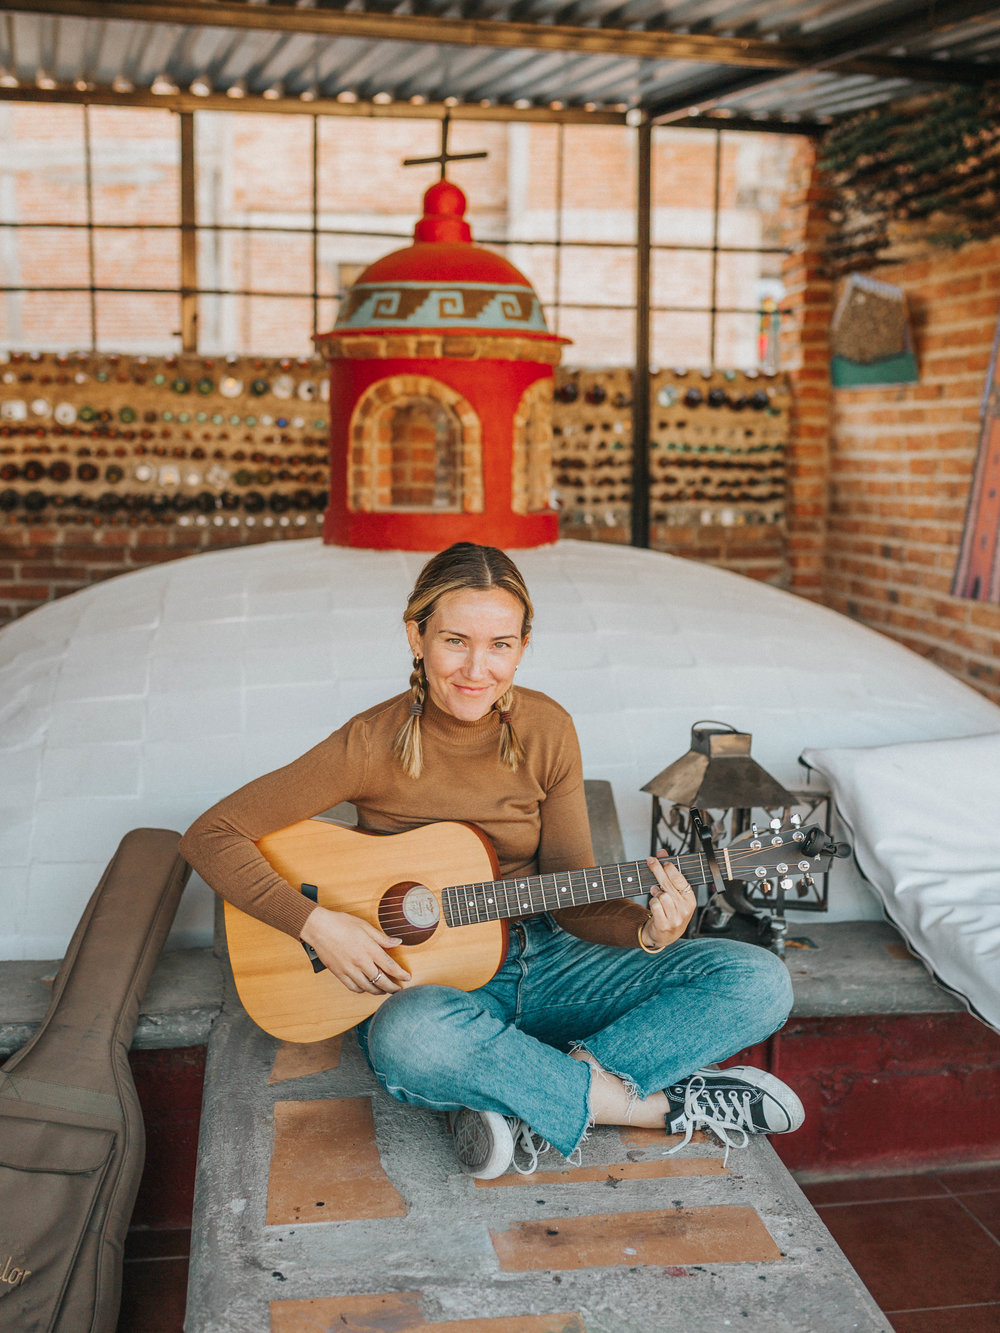 Rachel playing guitar at our hostel in Guanajuato.